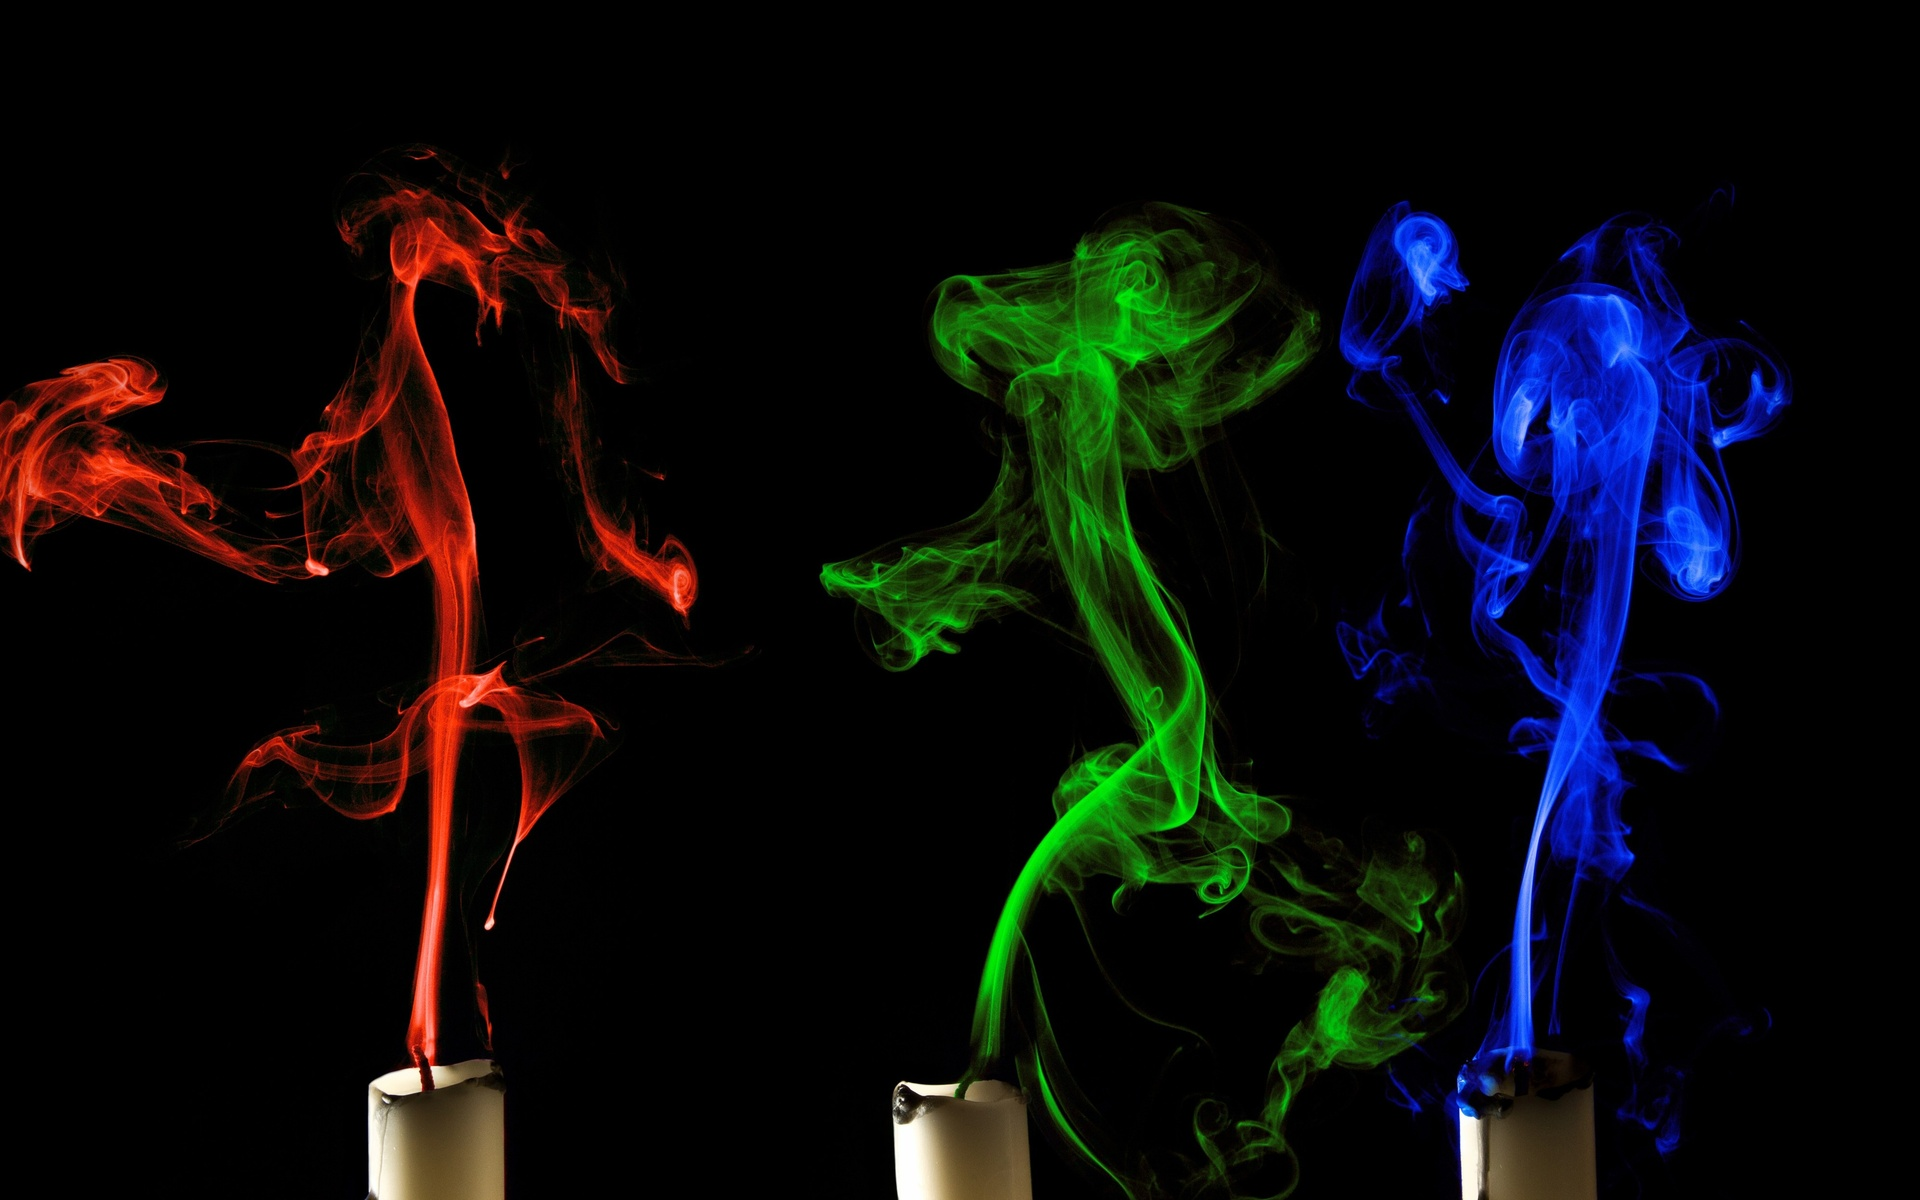 Candles abstract 3d smoke candle color wallpaper | 1920x1200 | 91314 | WallpaperUP